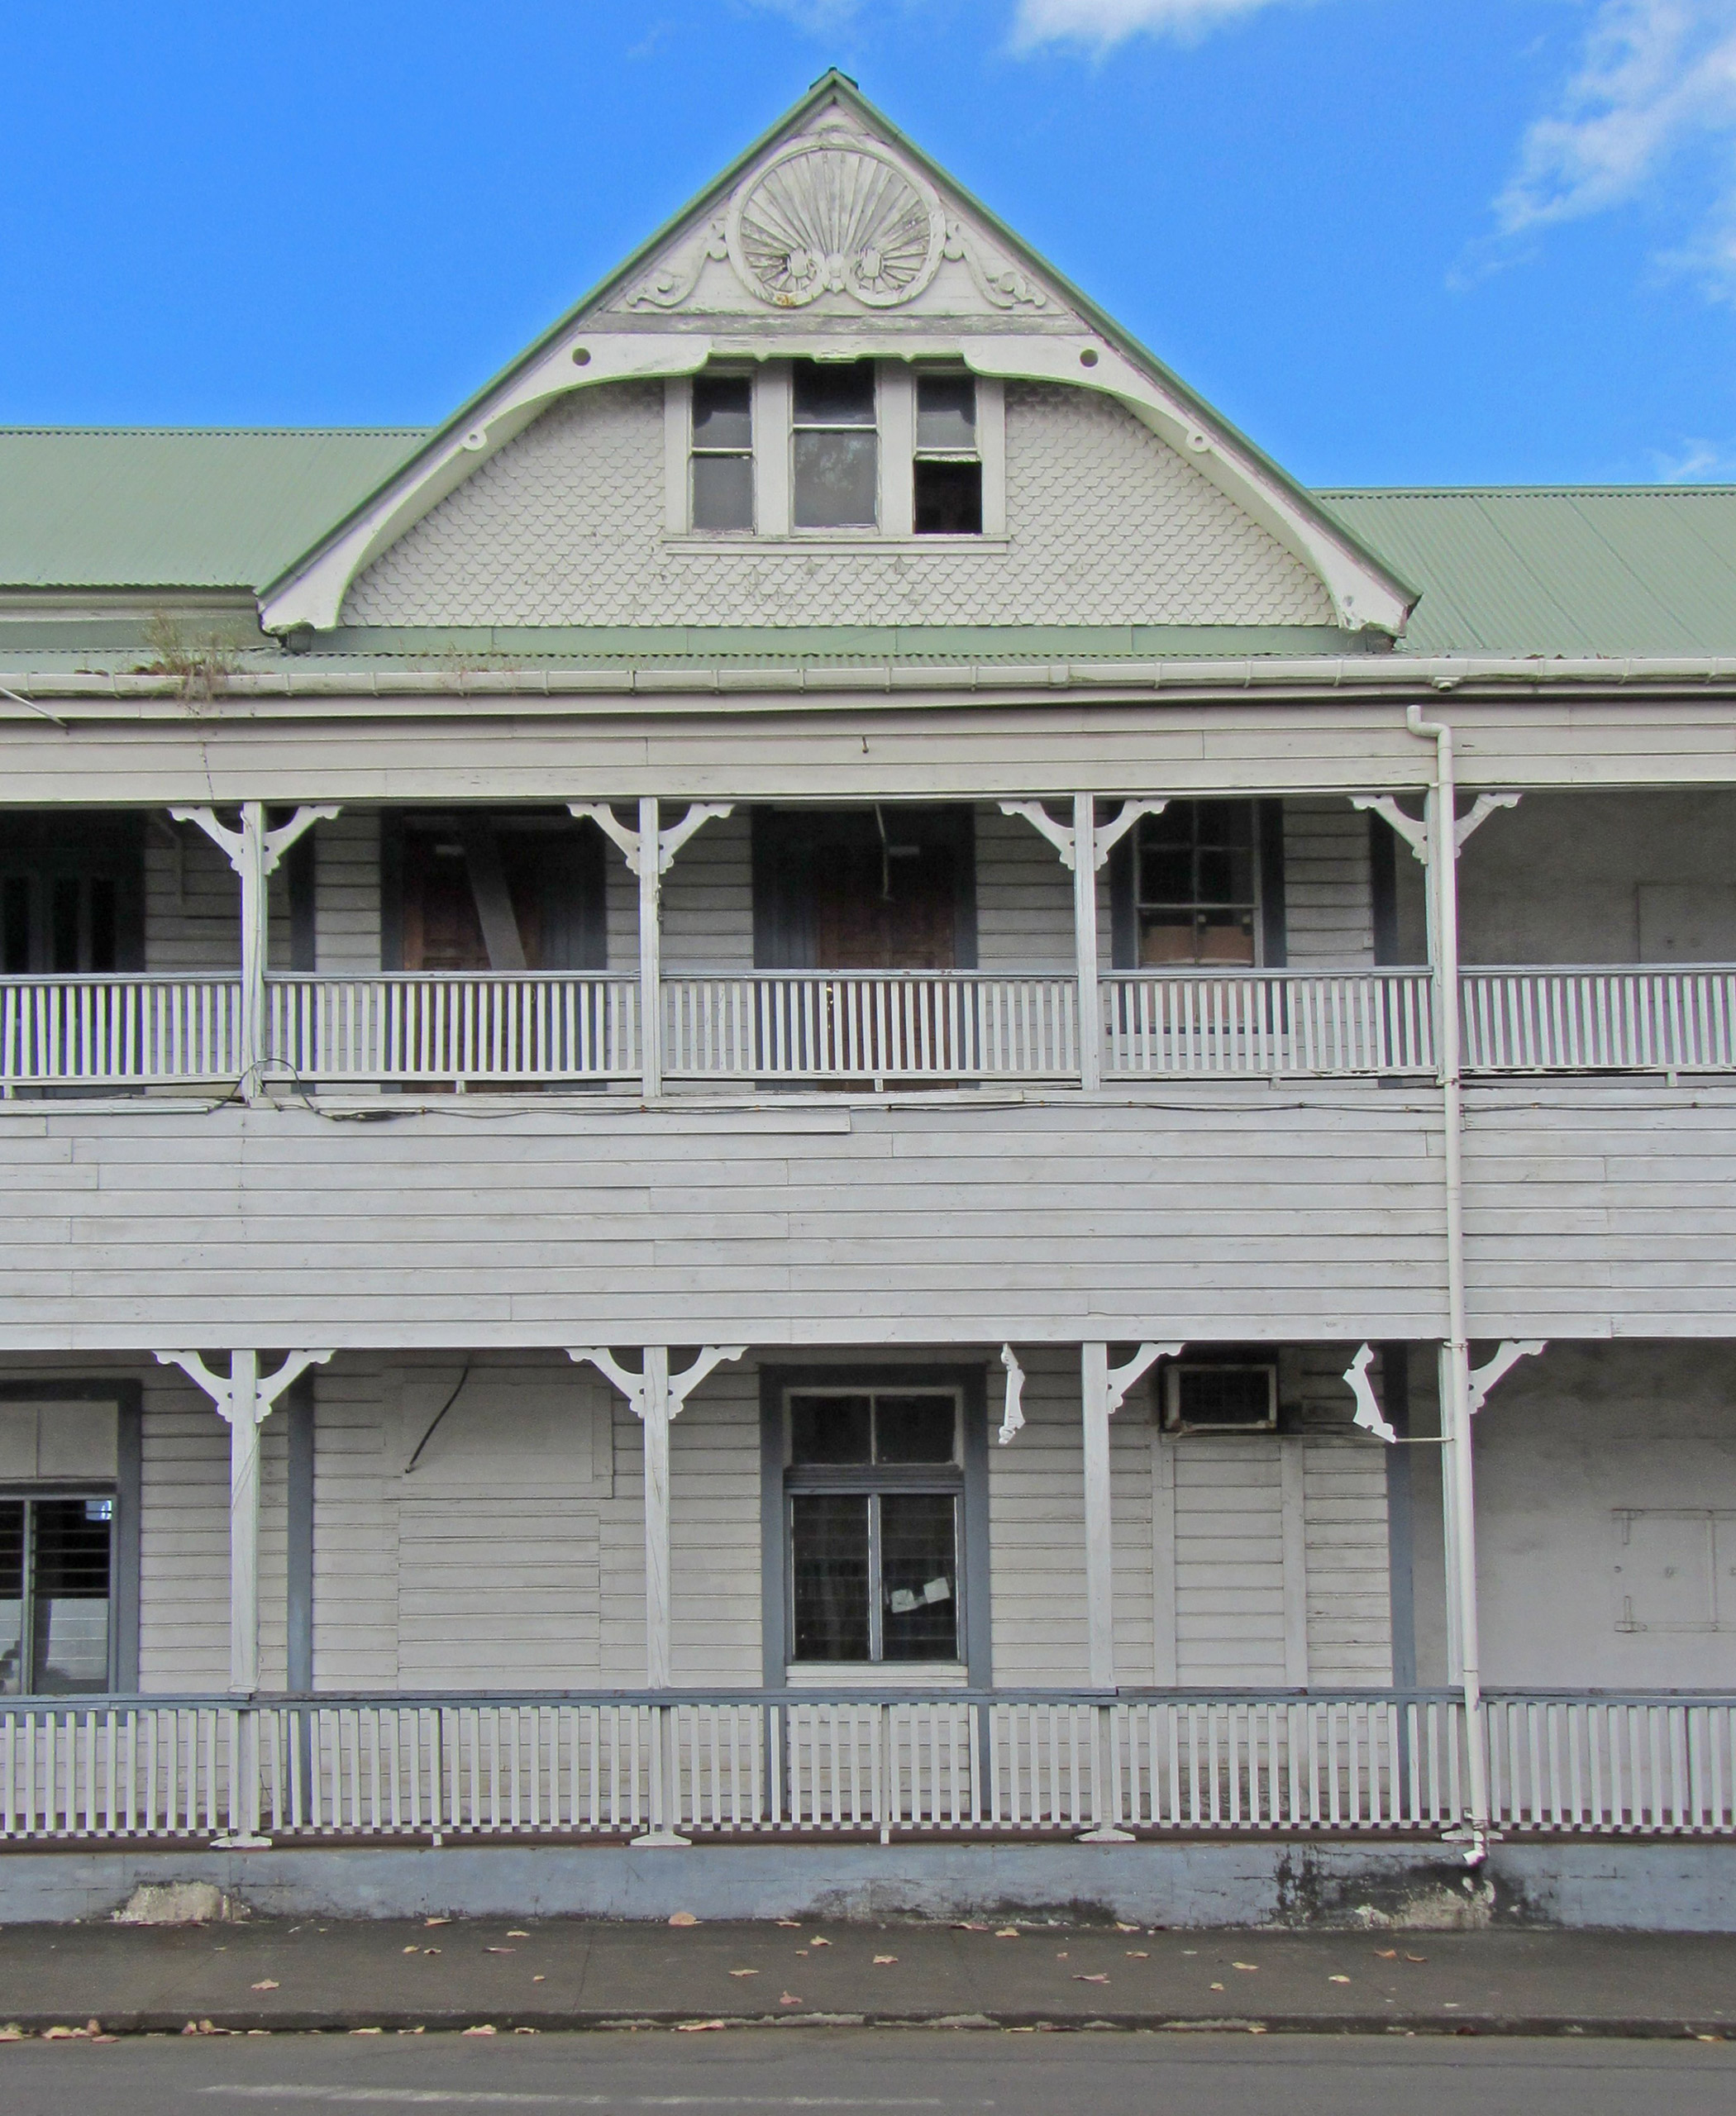 Samoa, Former Apia                               Courthouse: The Former Apia Courthouse is intimately tied to Samoa's modern history and is one of the last colonial buildings in the South Pacific, but a new use must be found for this landmark to be preserved.